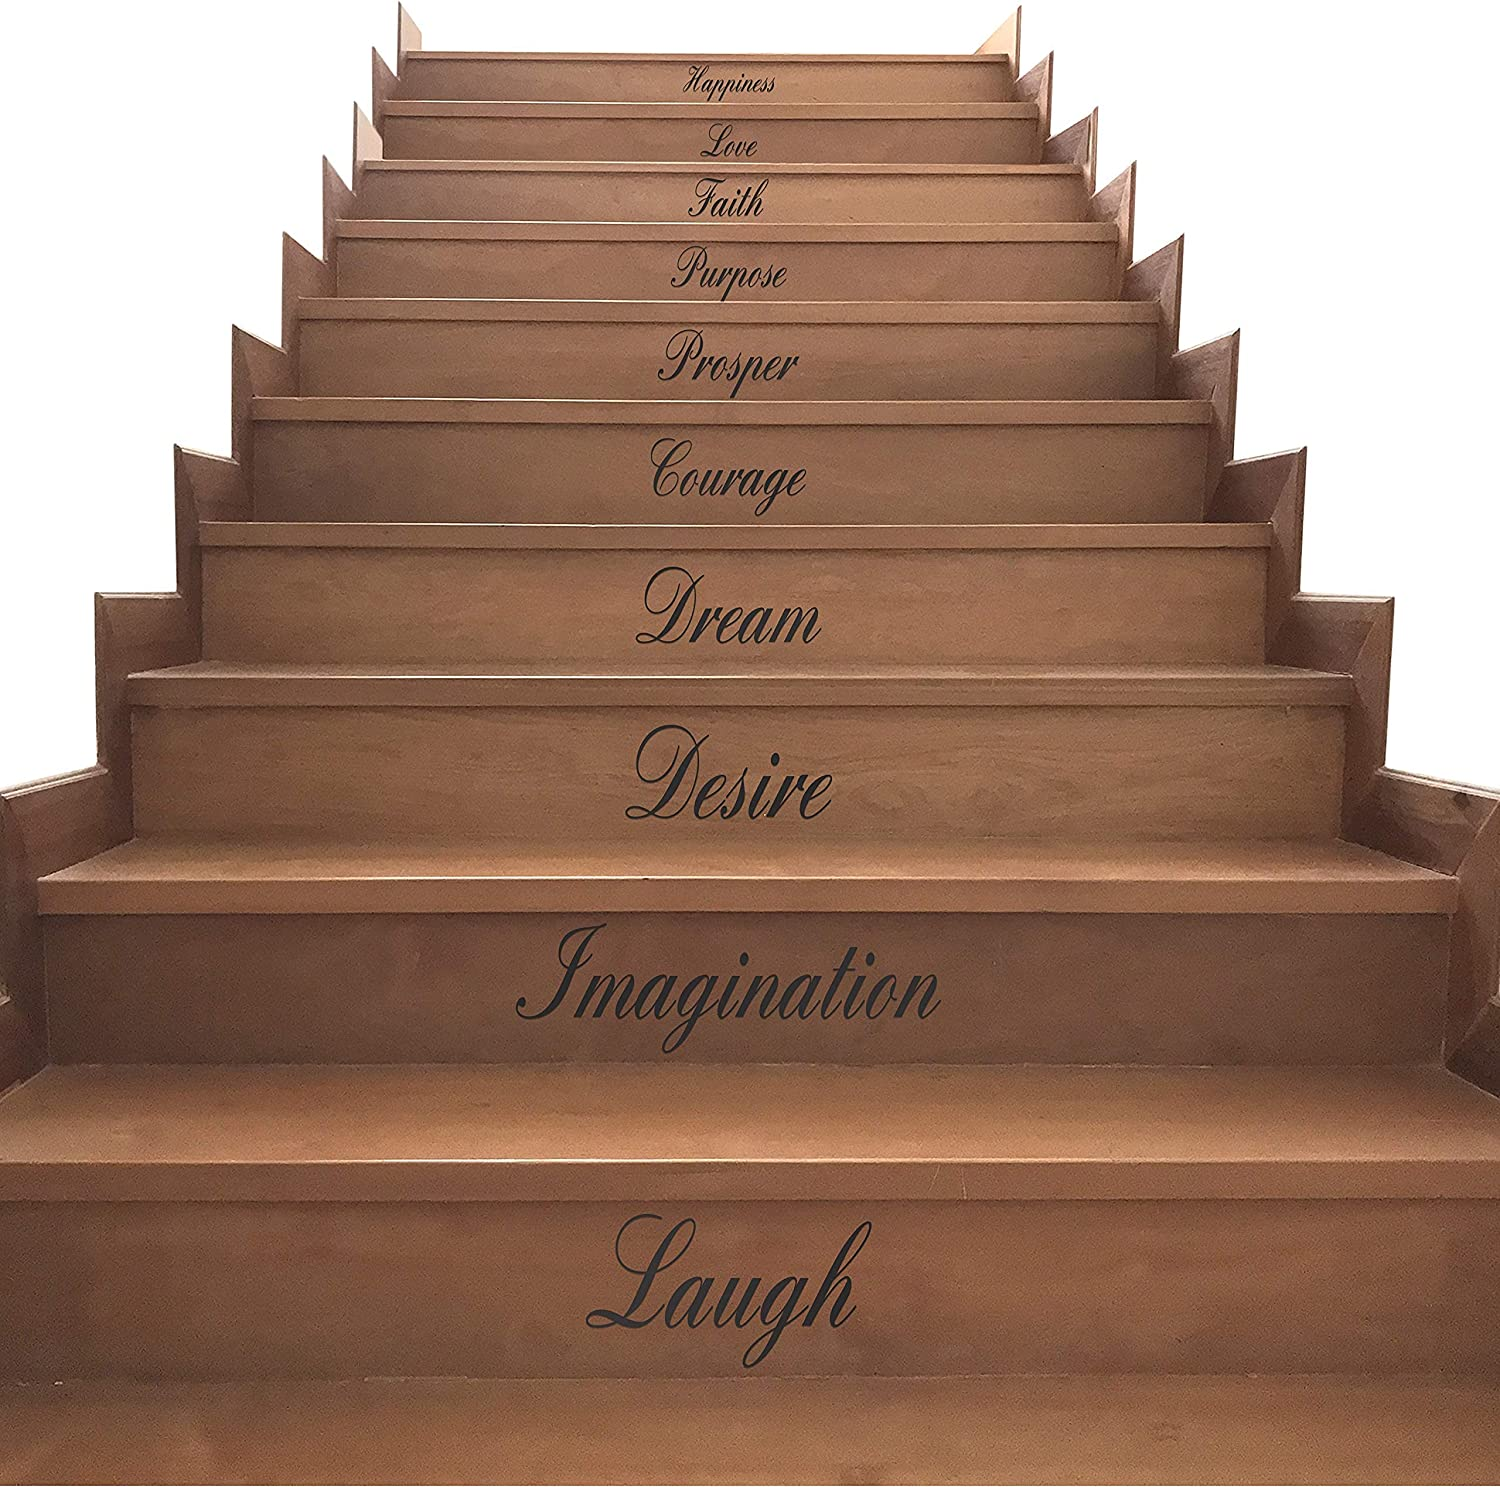 Wall Decals & Kitchen Stickers Wall Decor - Premium Stair Decals for Wooden Steps - Perfect for Bathrooms, Stairway, Living Room, Walls - Bathroom Decor Wall Art Stickers - Wall Words